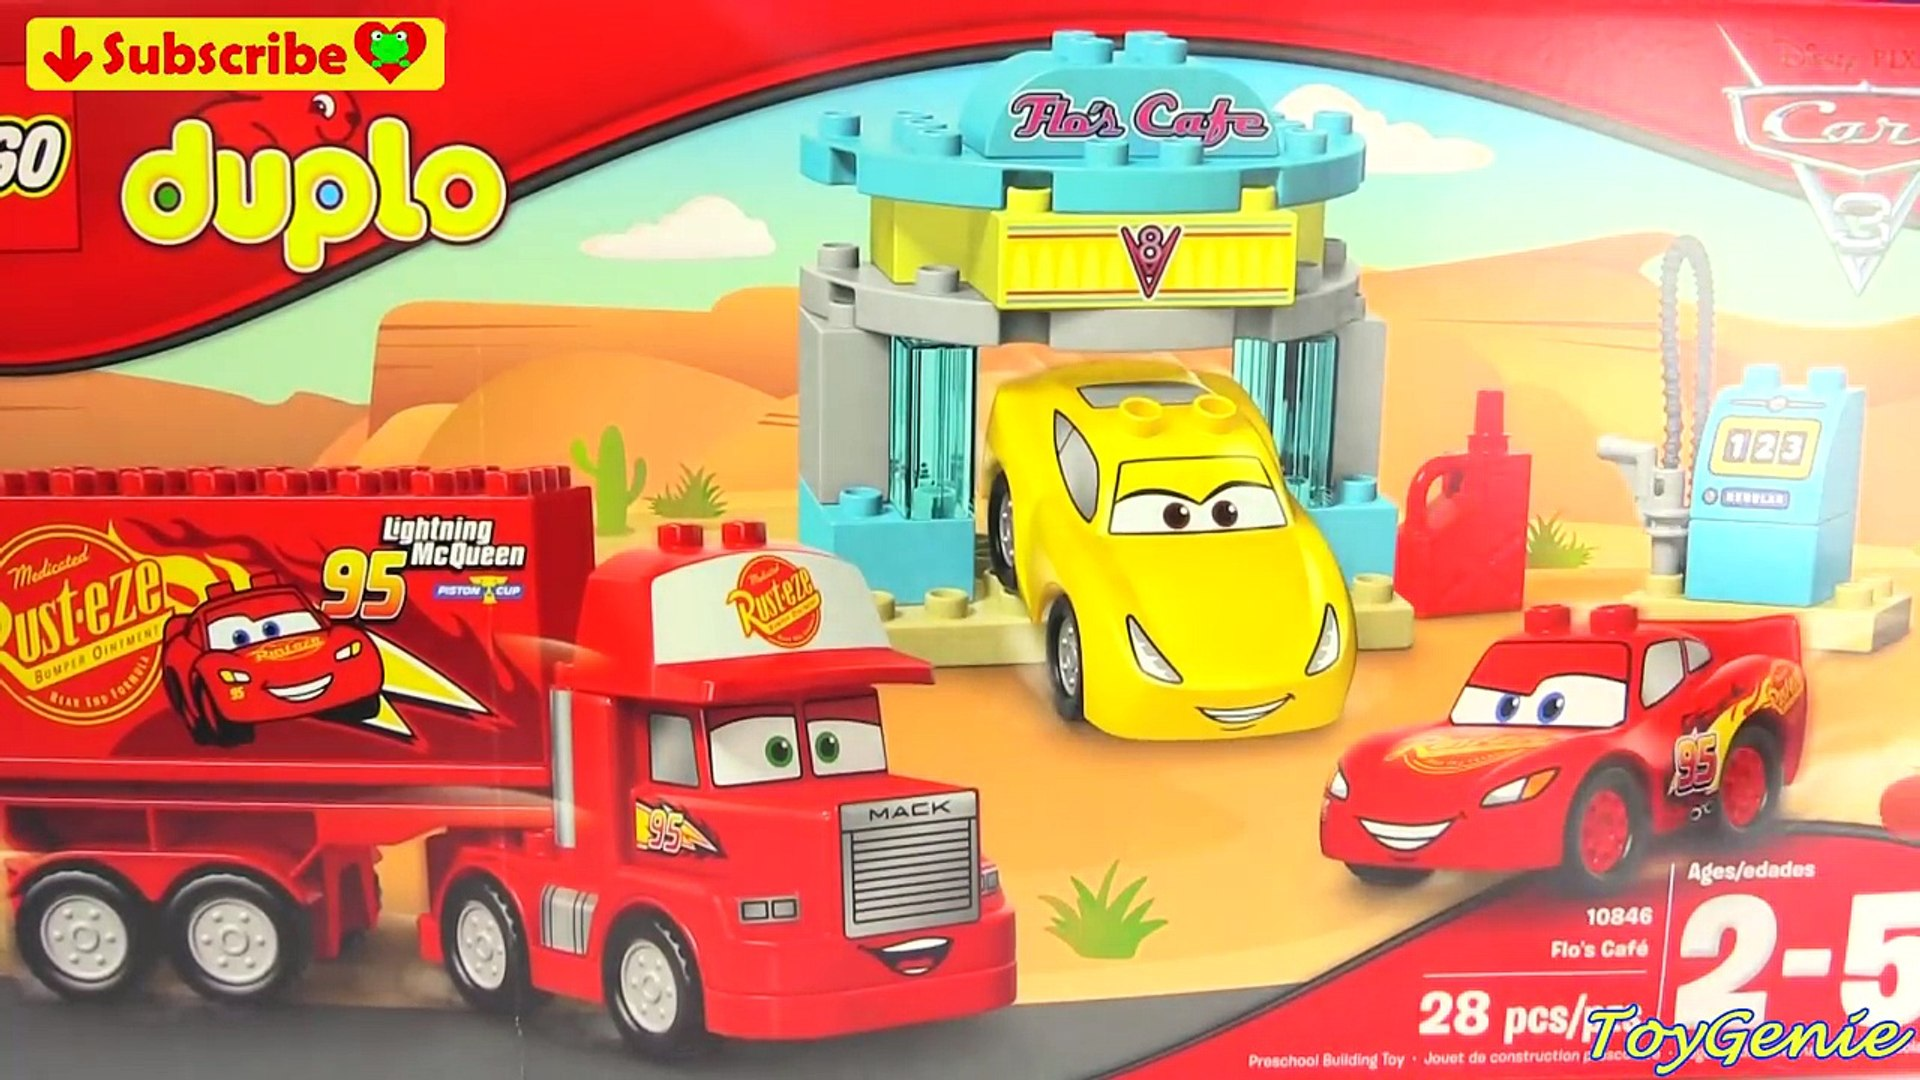 Cars 3 Jackson Storm Jouet Disney Cars 3 Movie Lego Duplo 10846 Lightning Mcqueen Cruz Ramirez Mack Truck Gumball Surprise